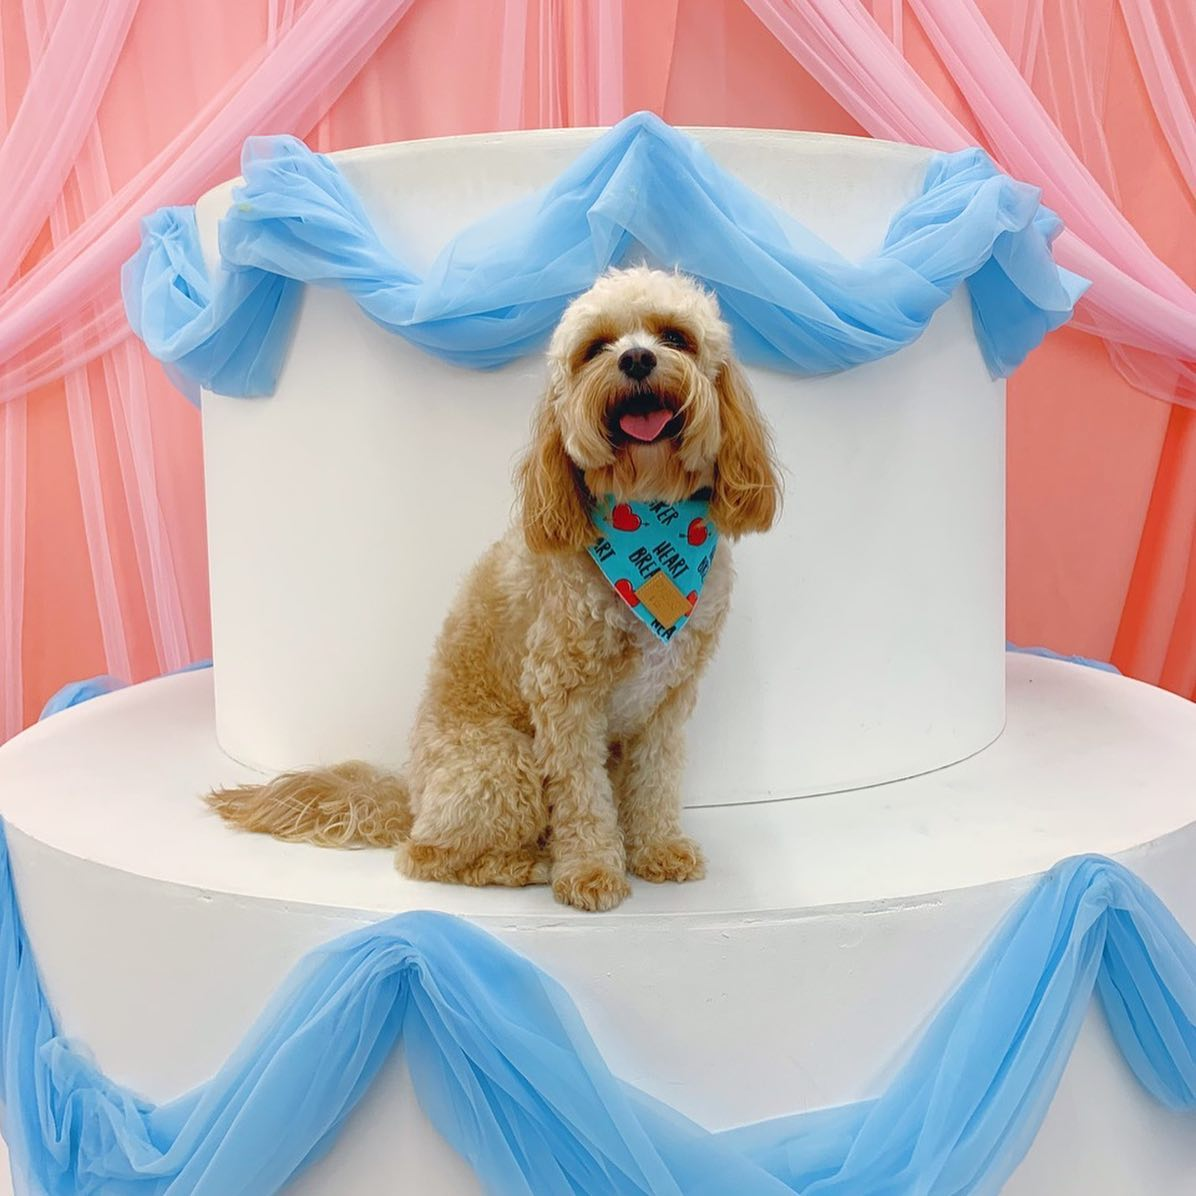 cavoodle sitting on tier of large scale model wedding cake